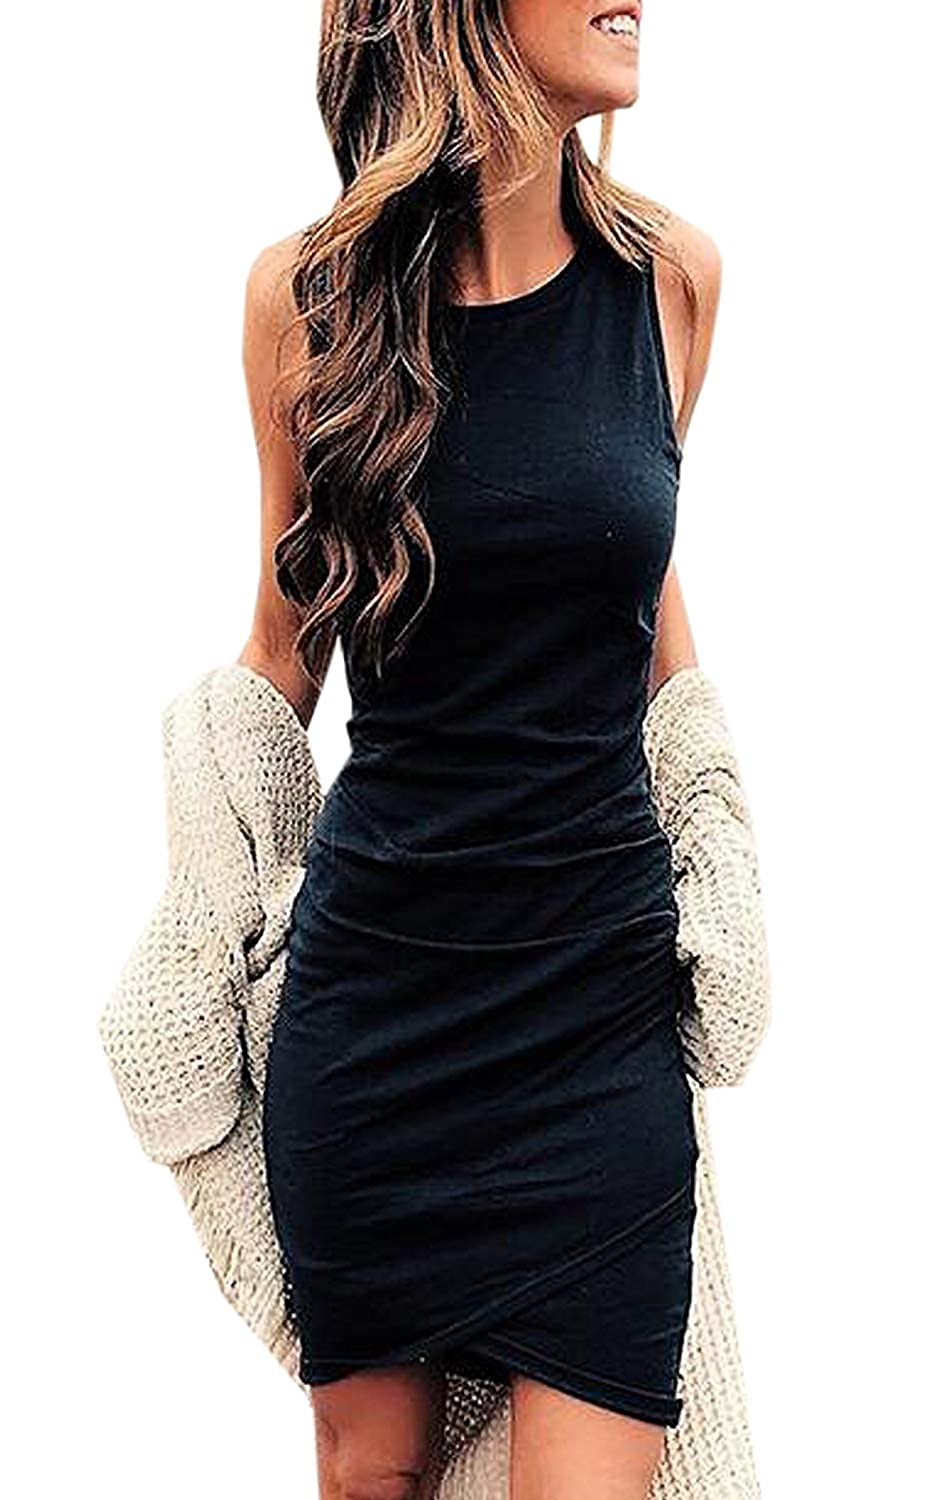 cb2e6aa8678 Top 10 wholesale Bodycon Dress Online - Chinabrands.com